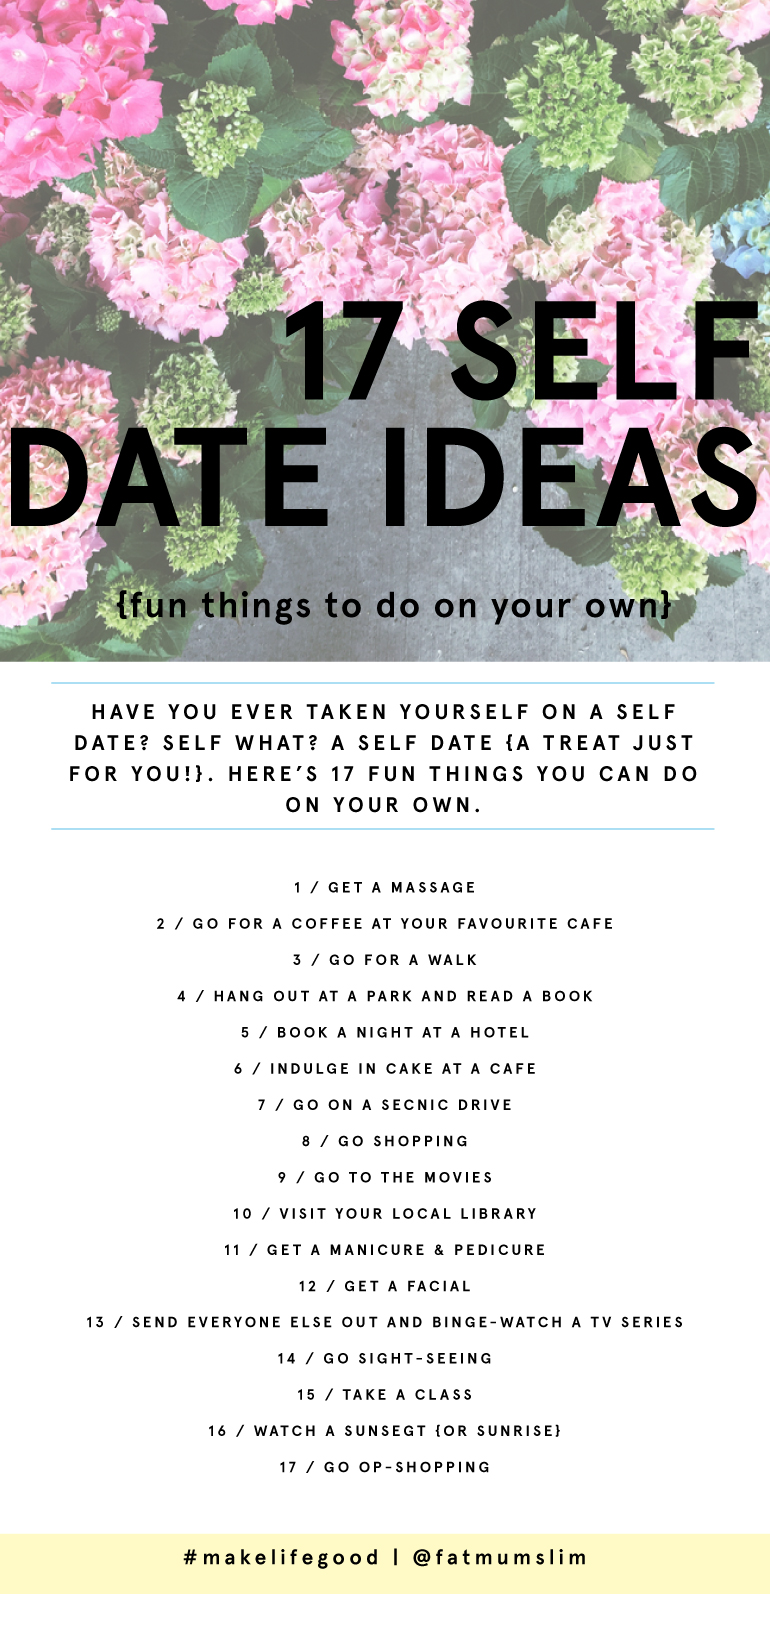 Date ideas boise in Australia